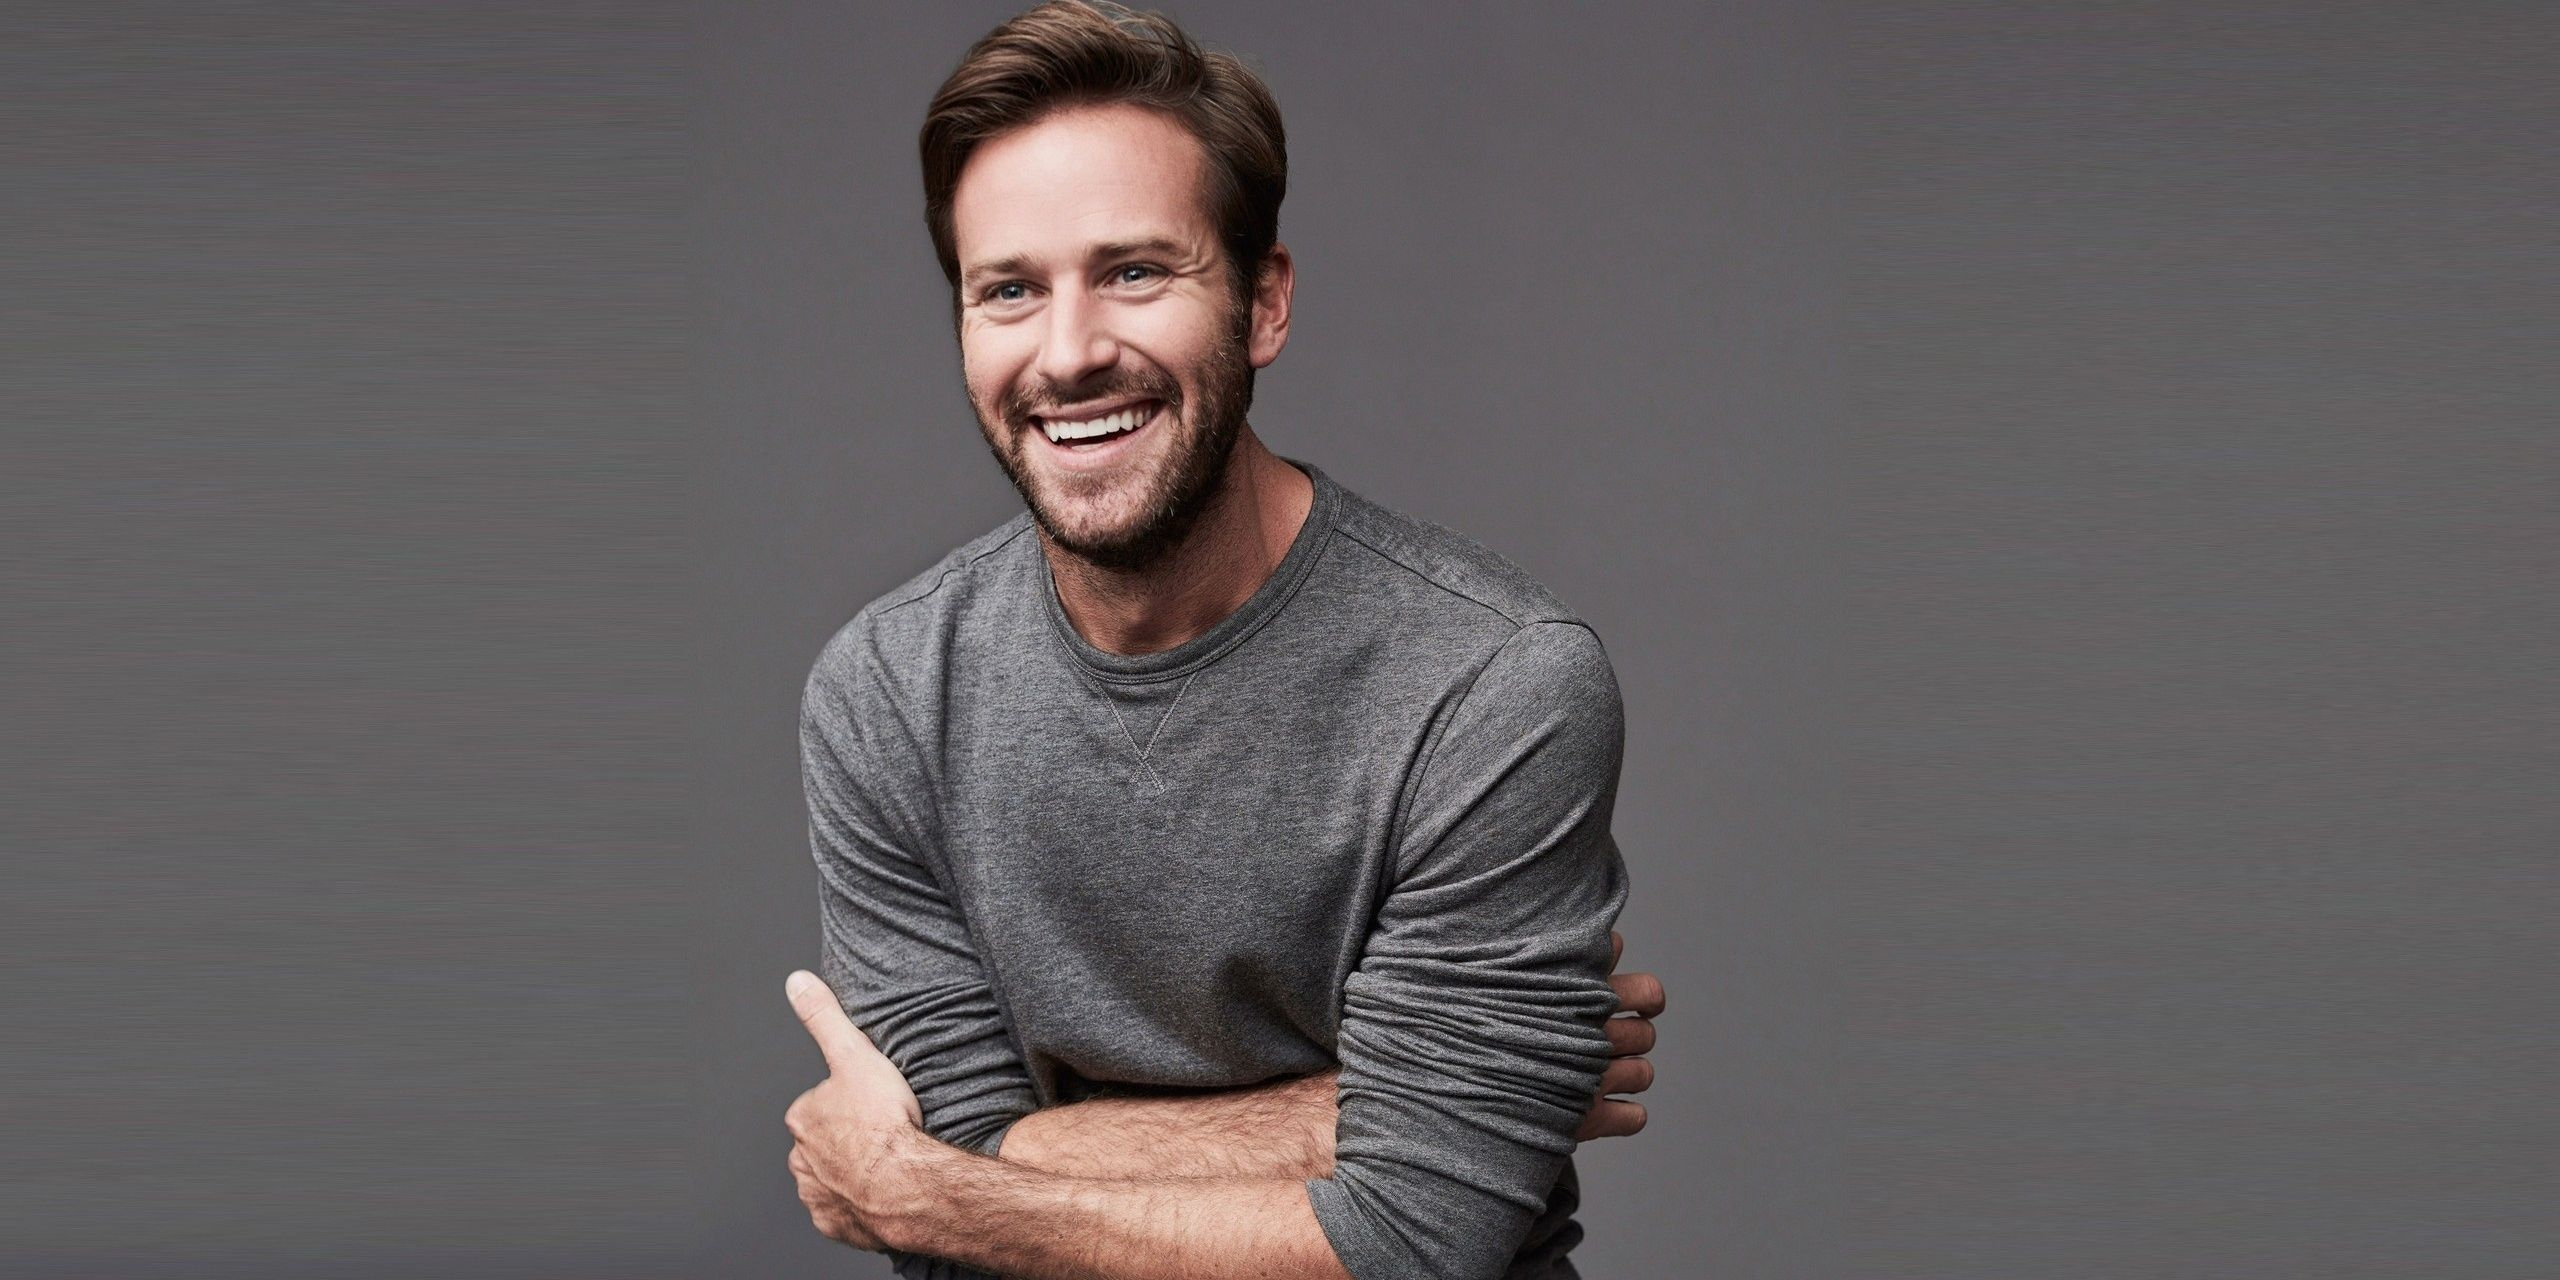 Armie Hammer's 10 Best Movies (According To Rotten Tomatoes)